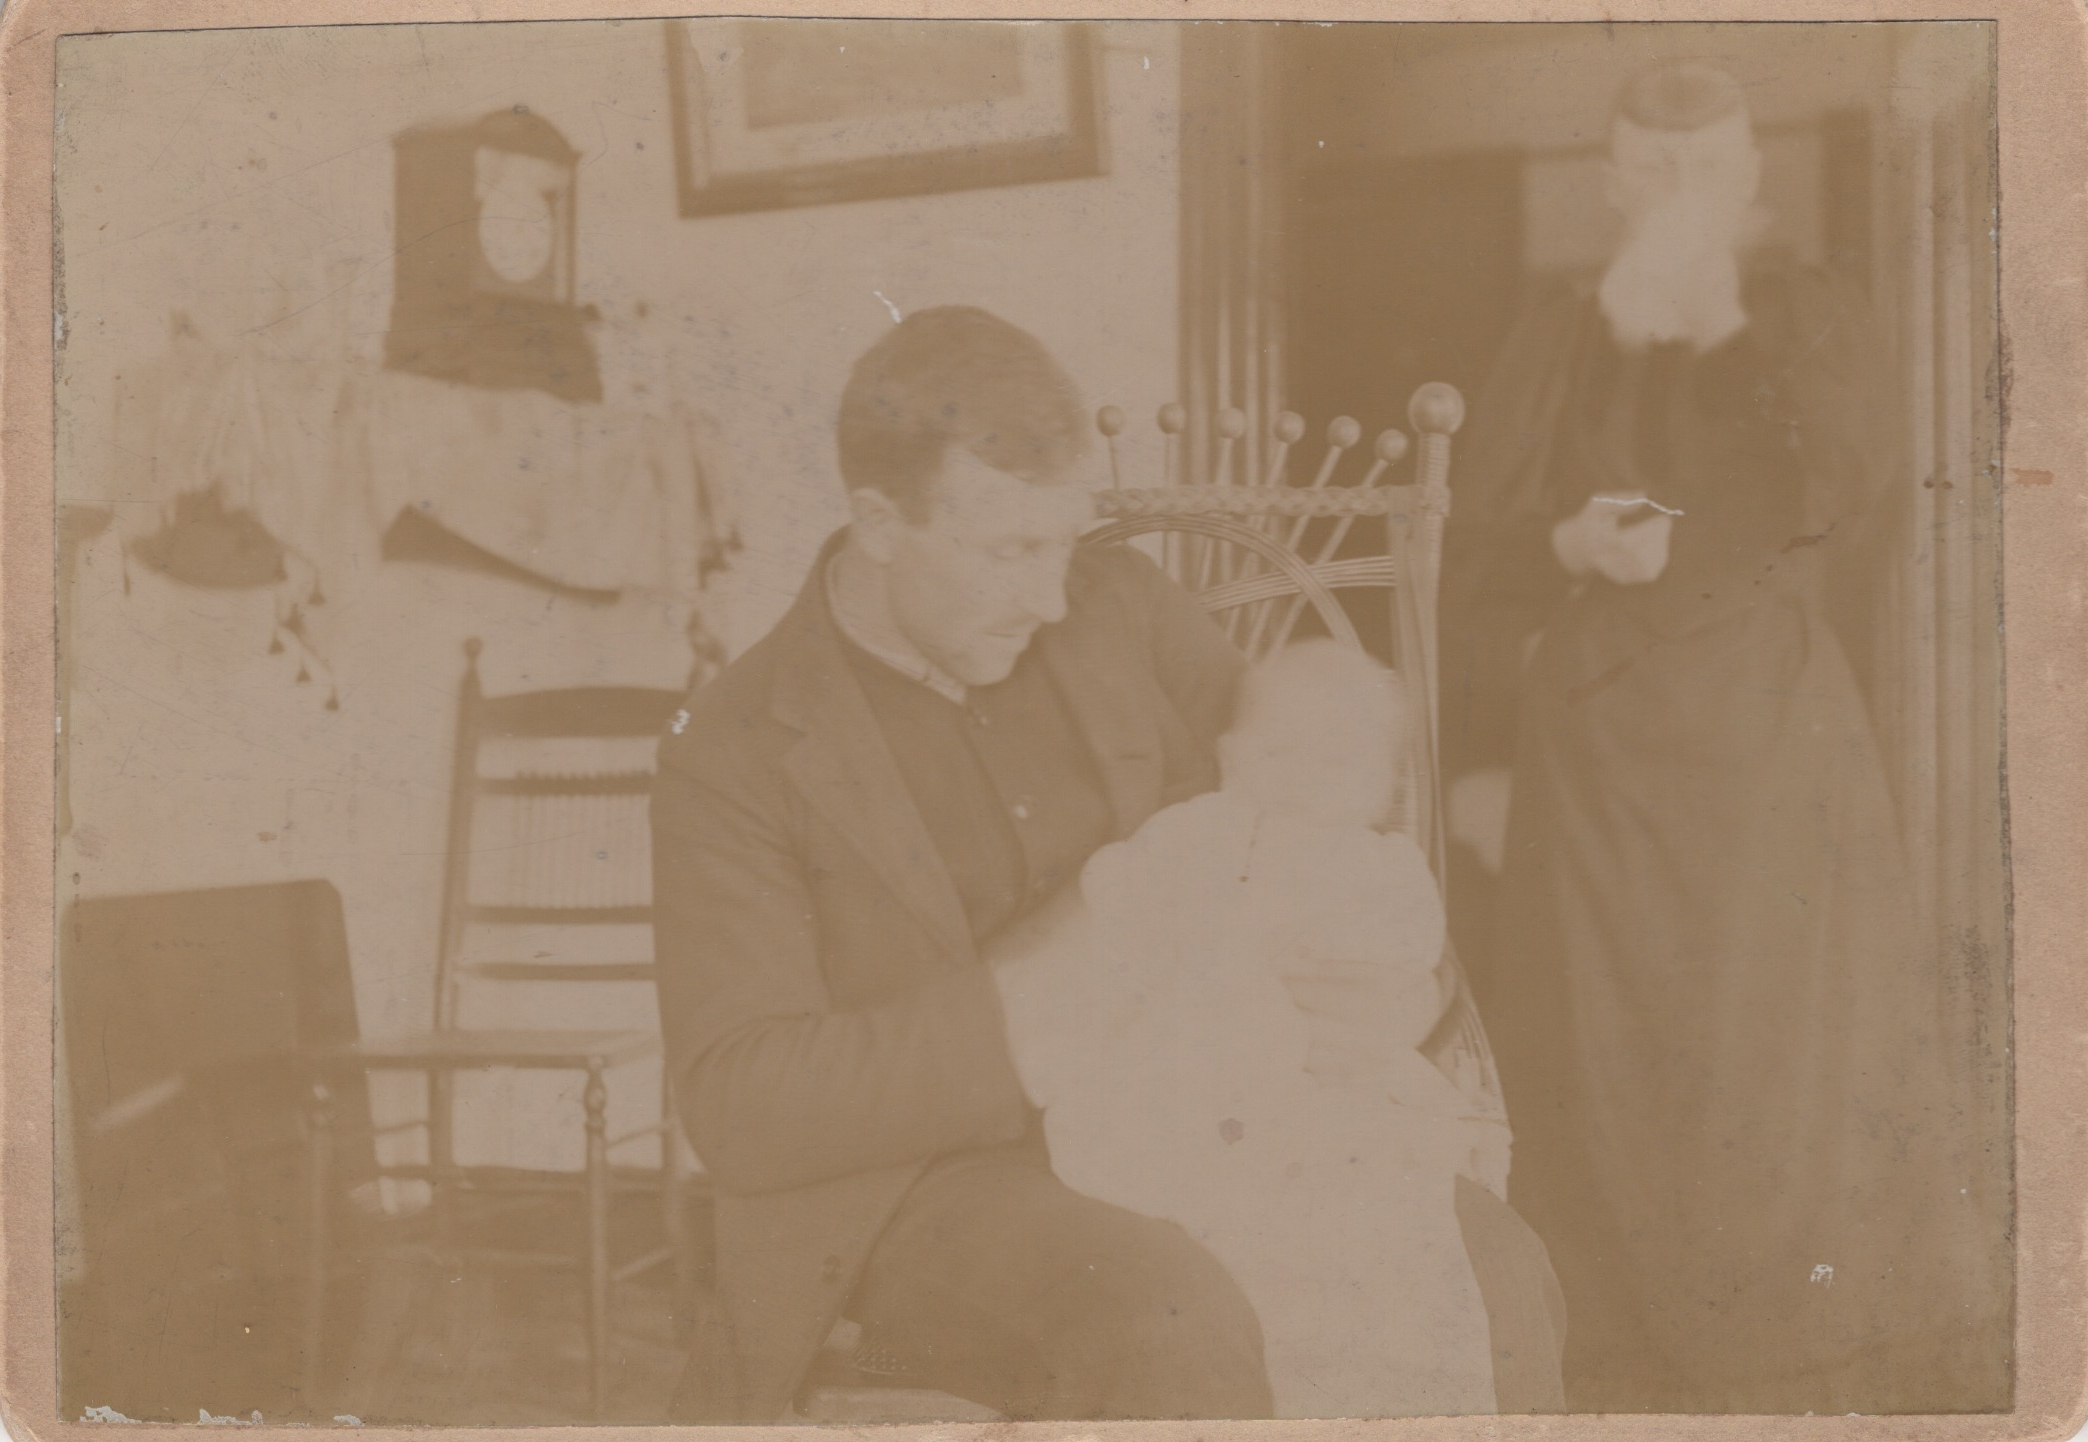 Charles I Young Sr holding Baby Frank Young, Wife Mary in Background